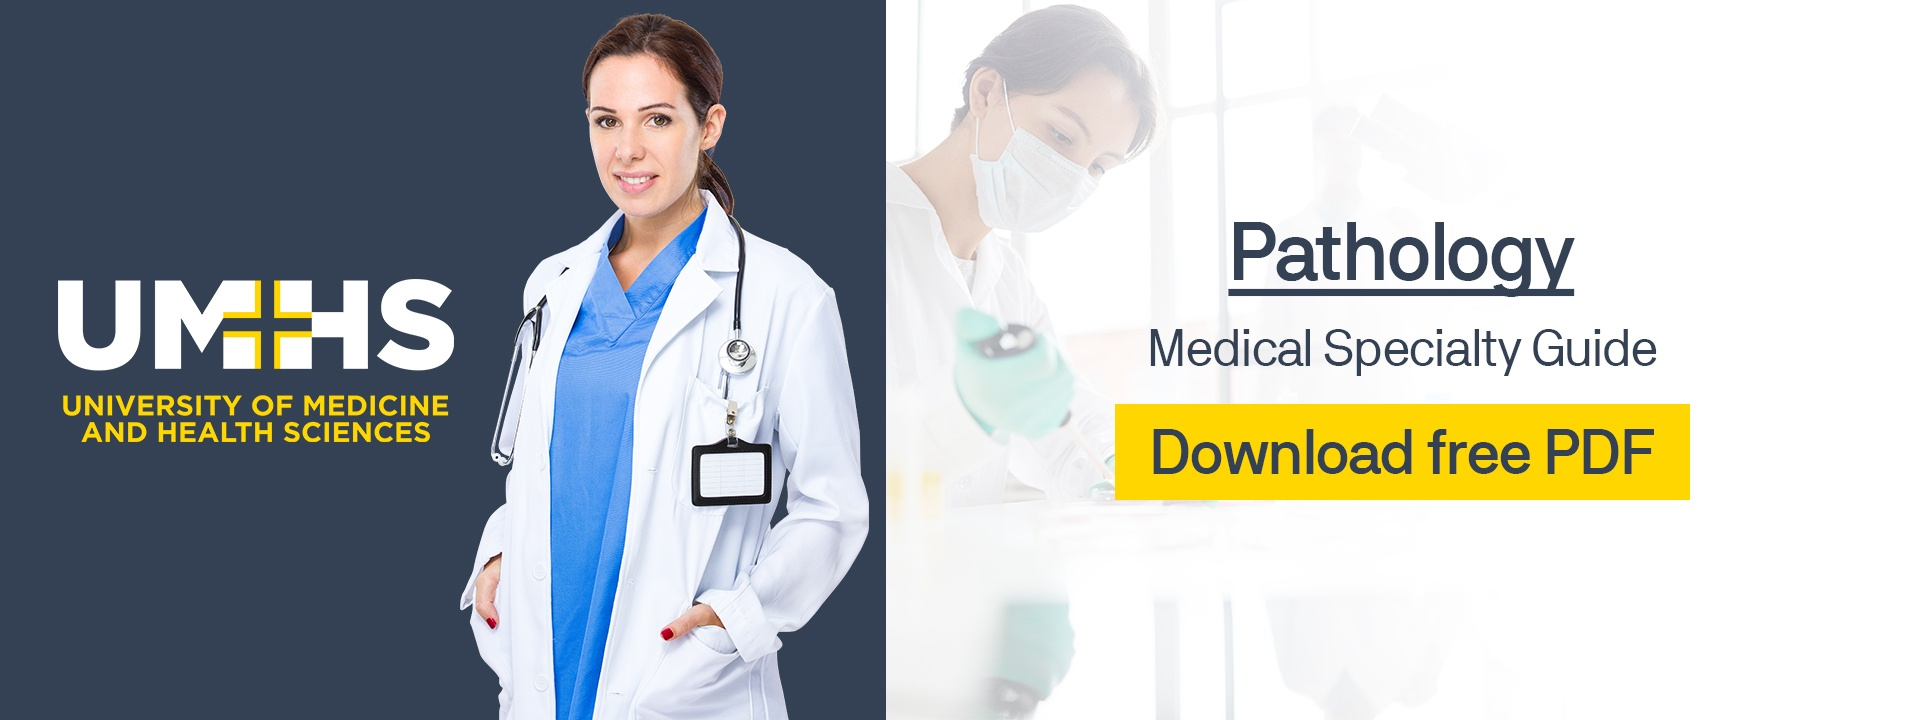 Pathology Medical Specialty Guide: Download free PDF